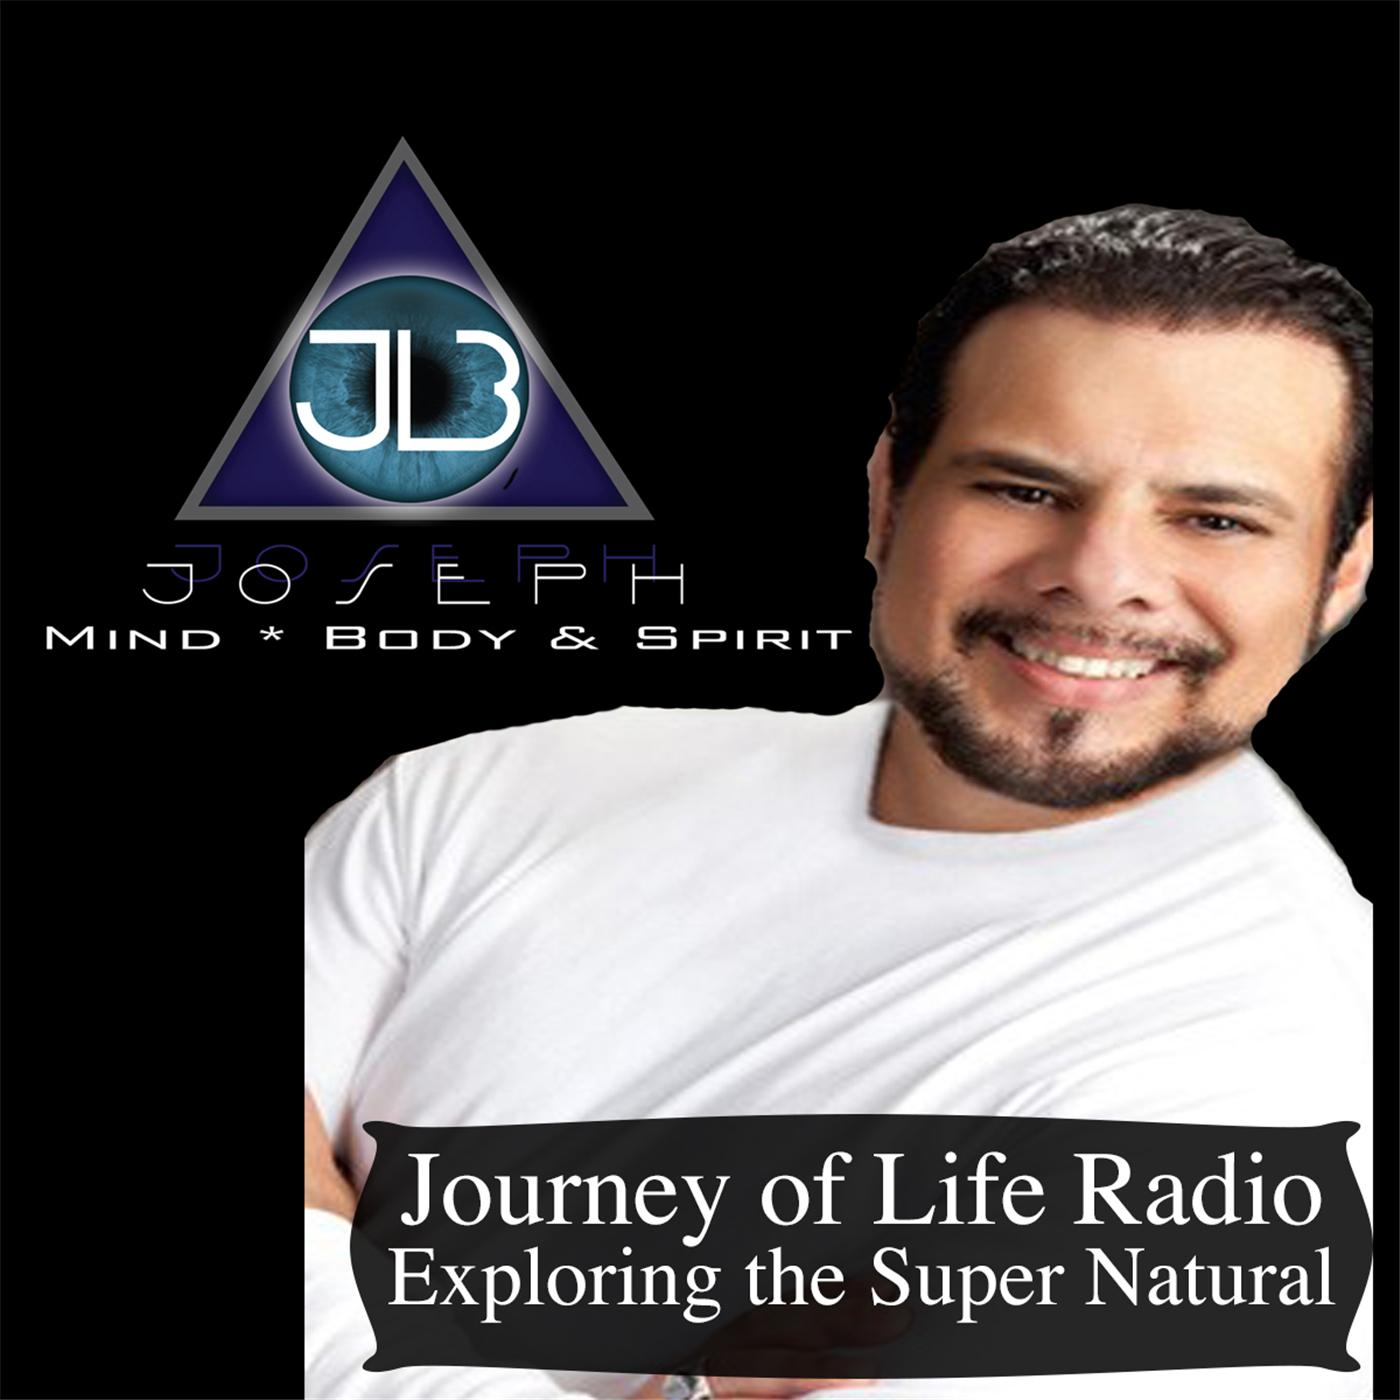 Journey of Life Radio